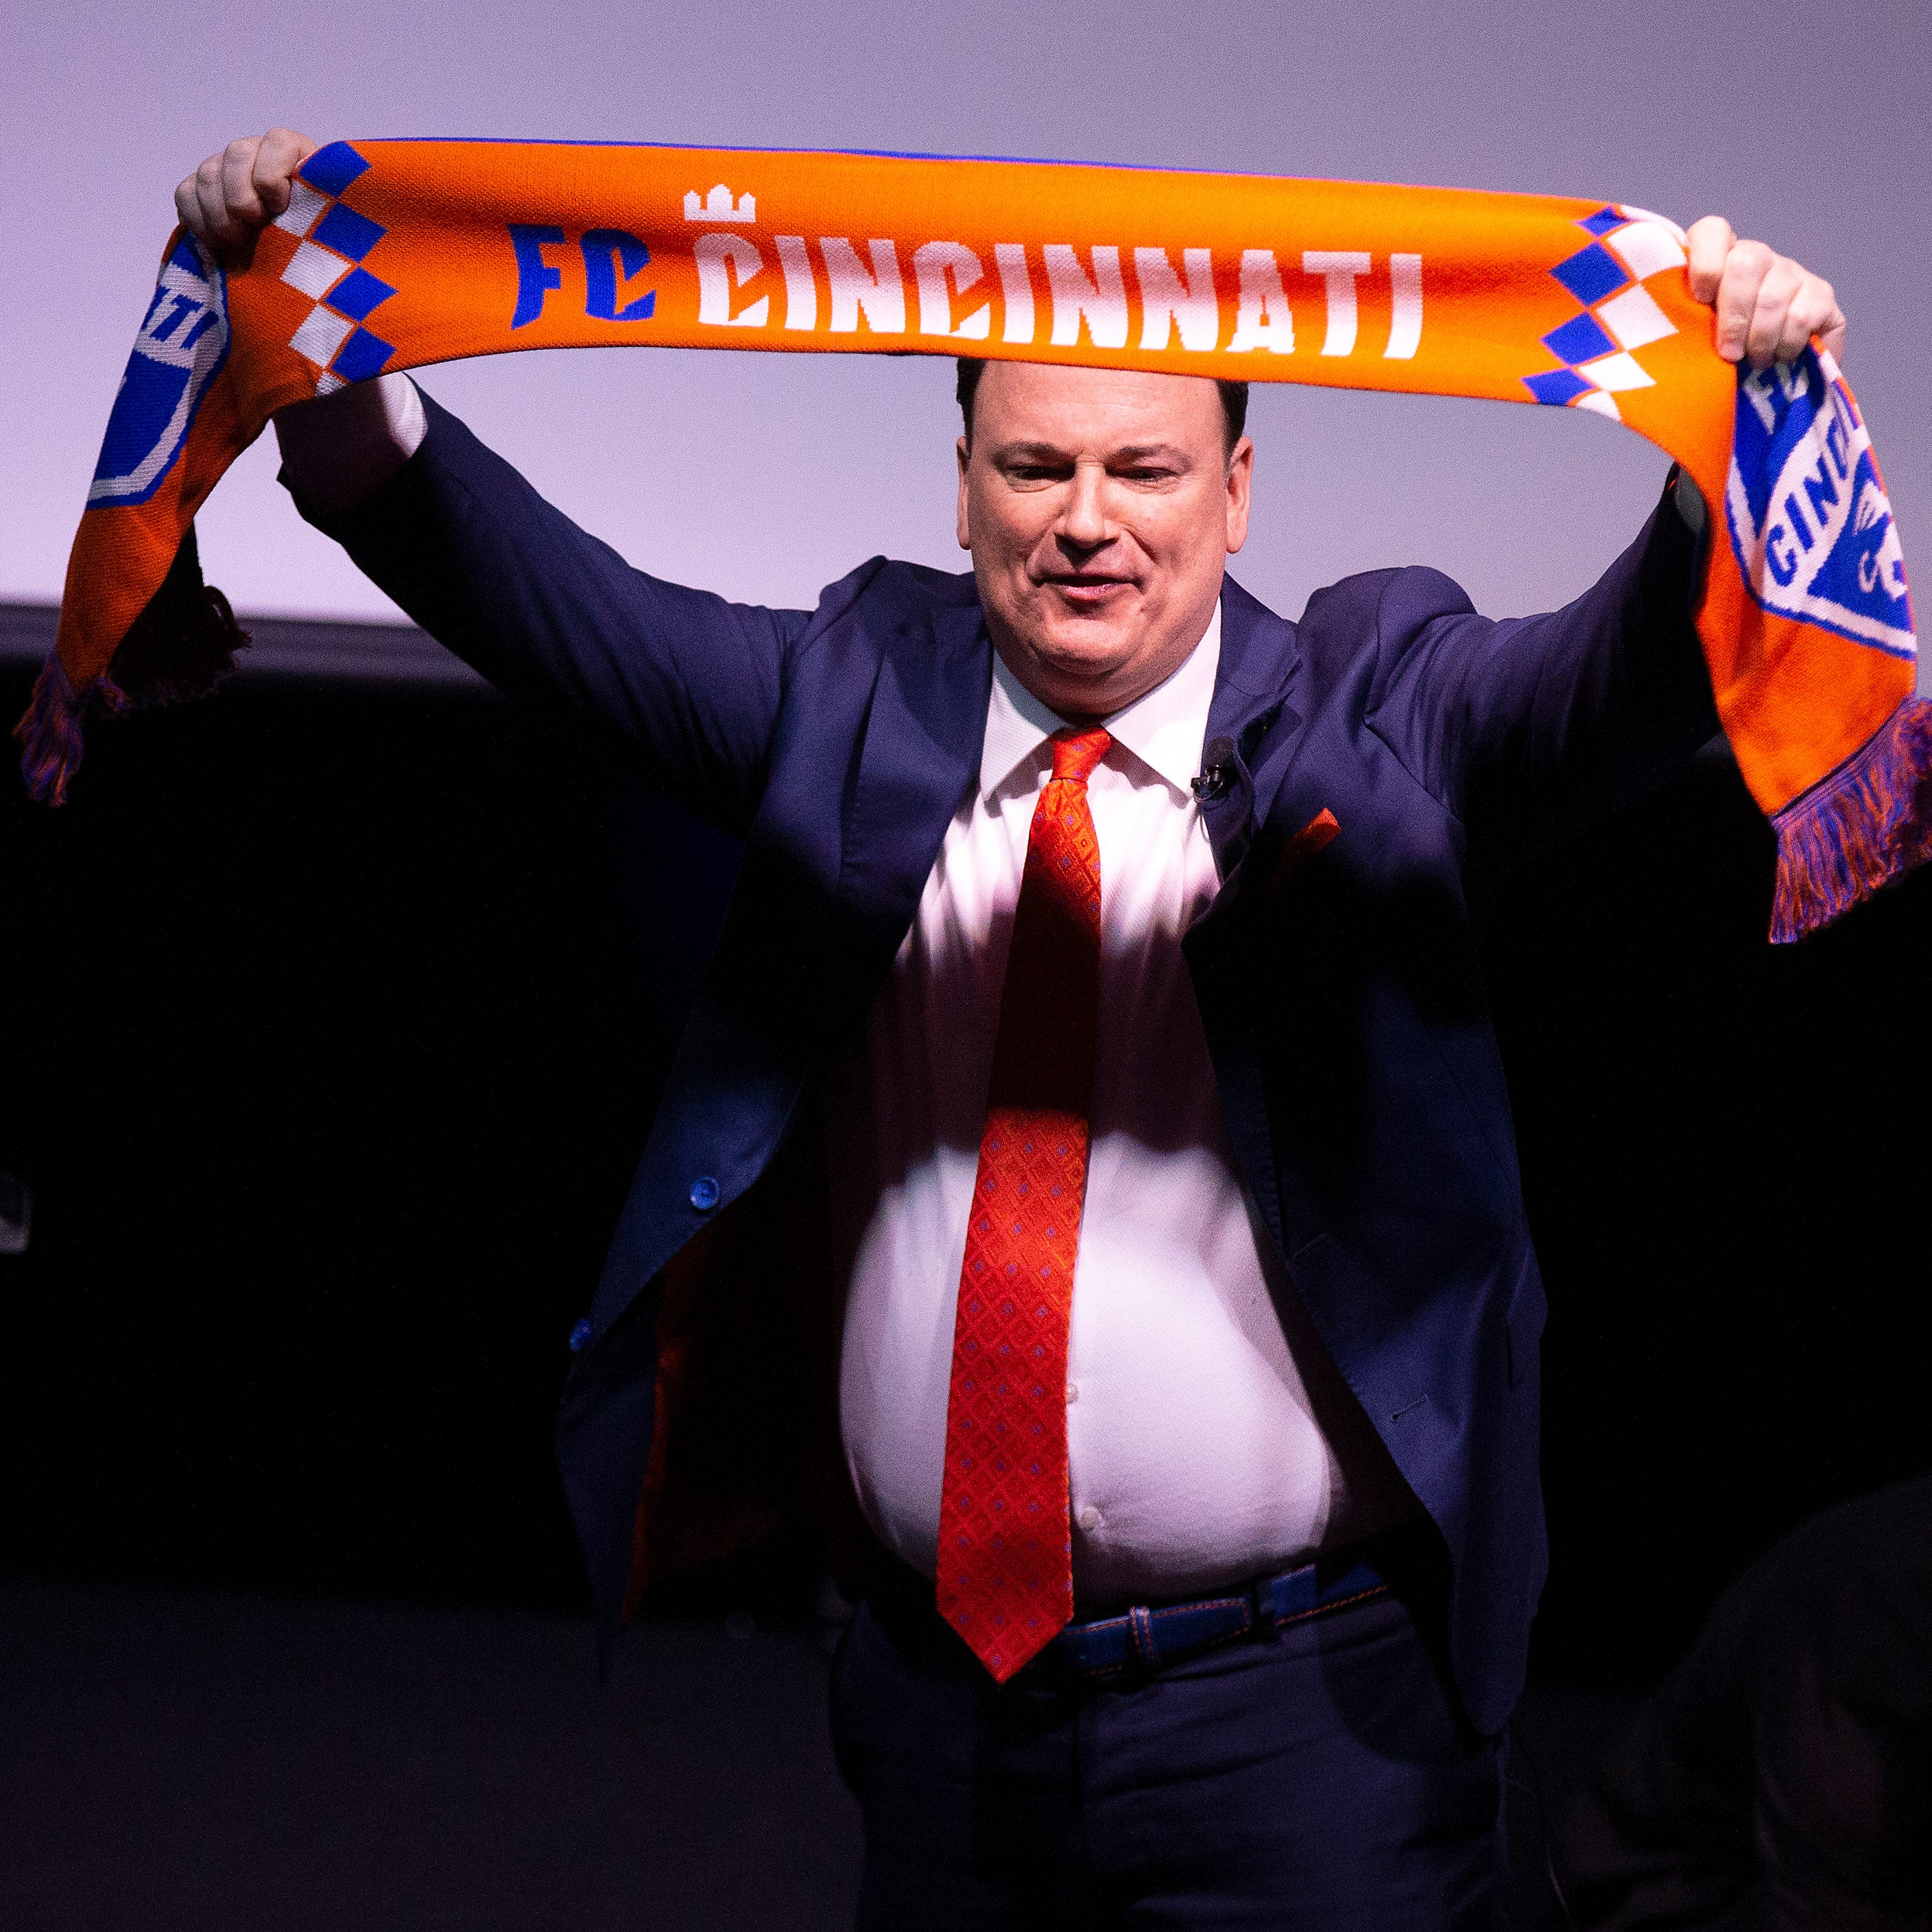 Live updates: FC Cincinnati's new MLS logo, branding reveal